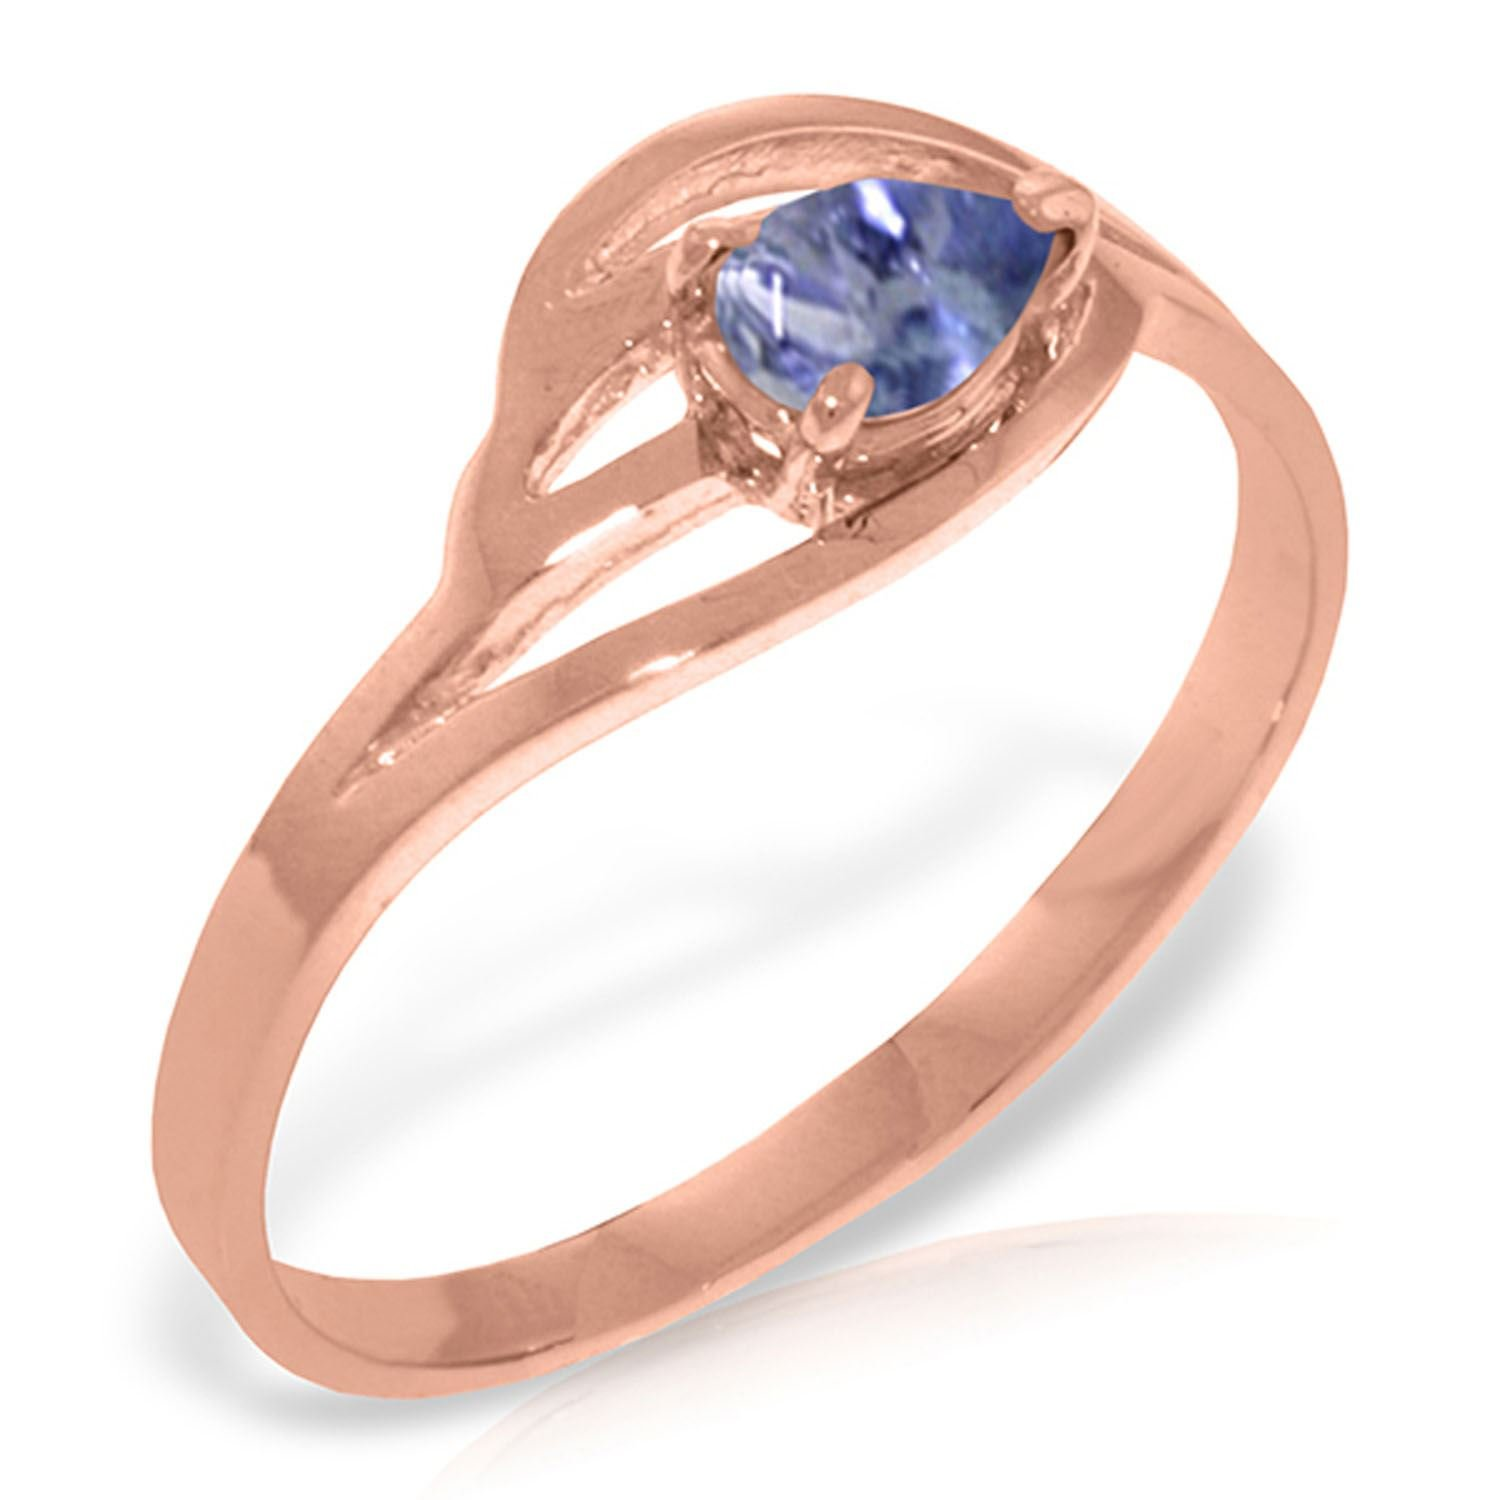 ALARRI 14K Solid Rose Gold Ring w/ Natural Tanzanite With Ring Size 5